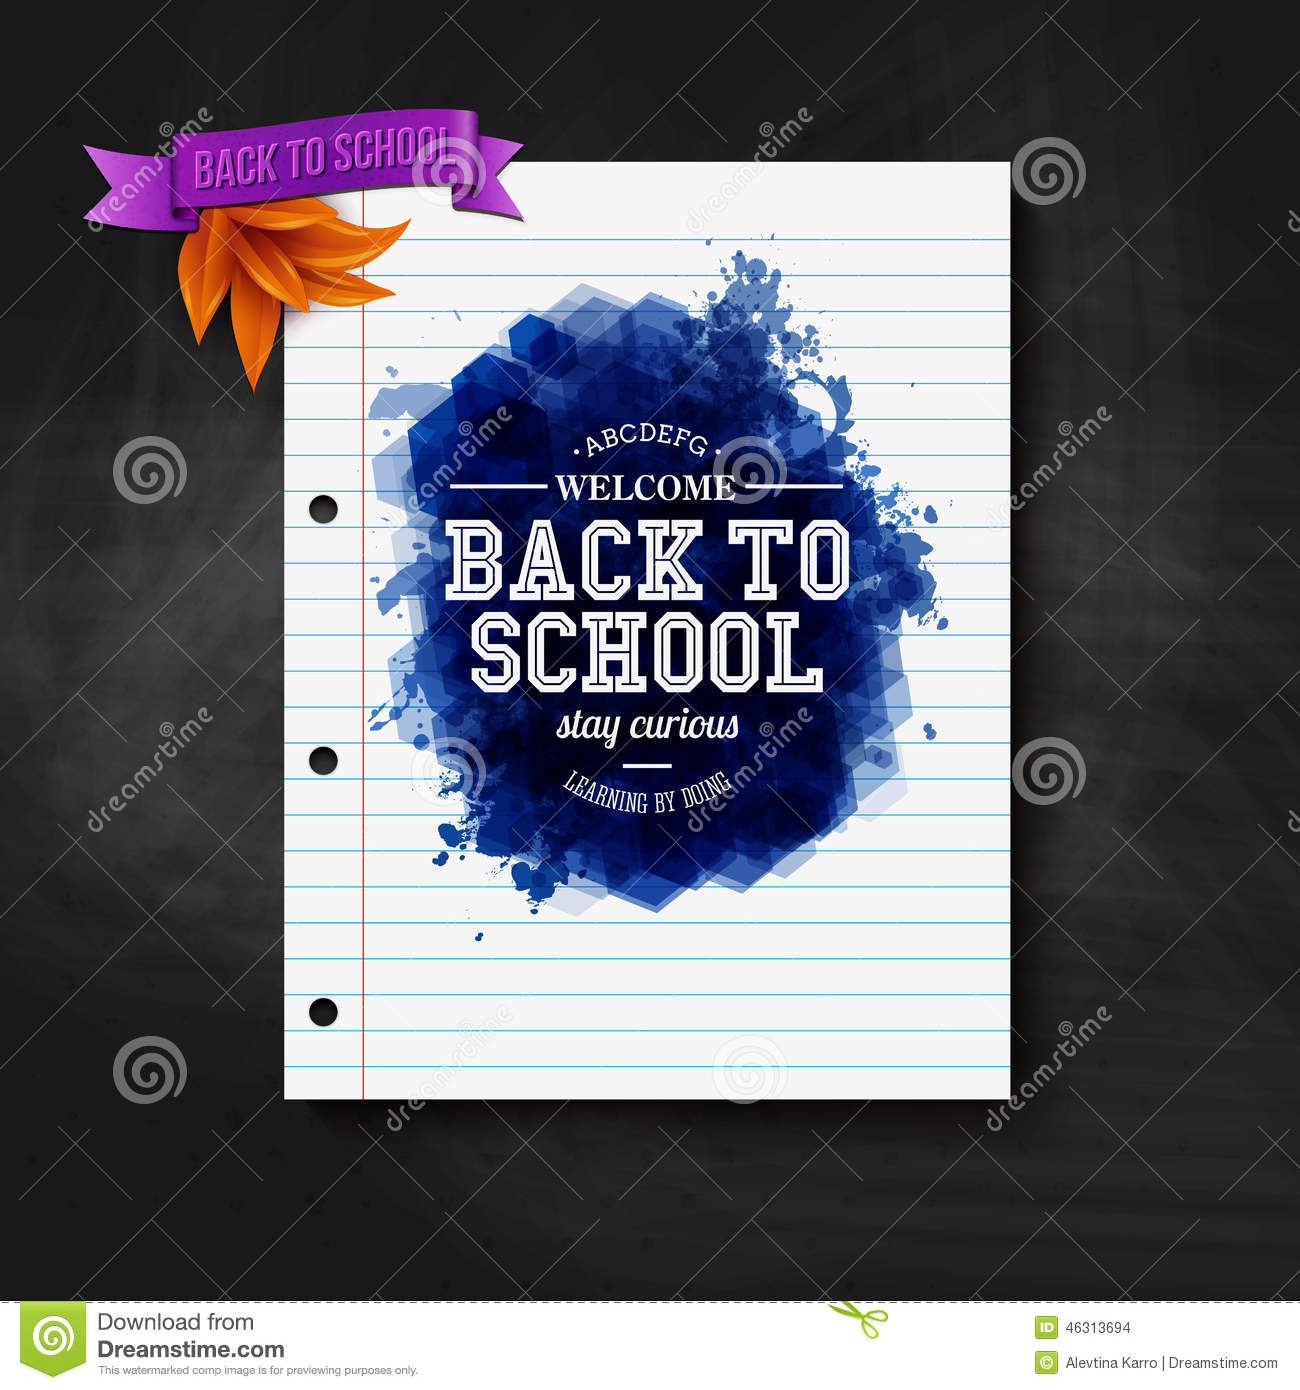 Back to school card chalkboard typography design stock images